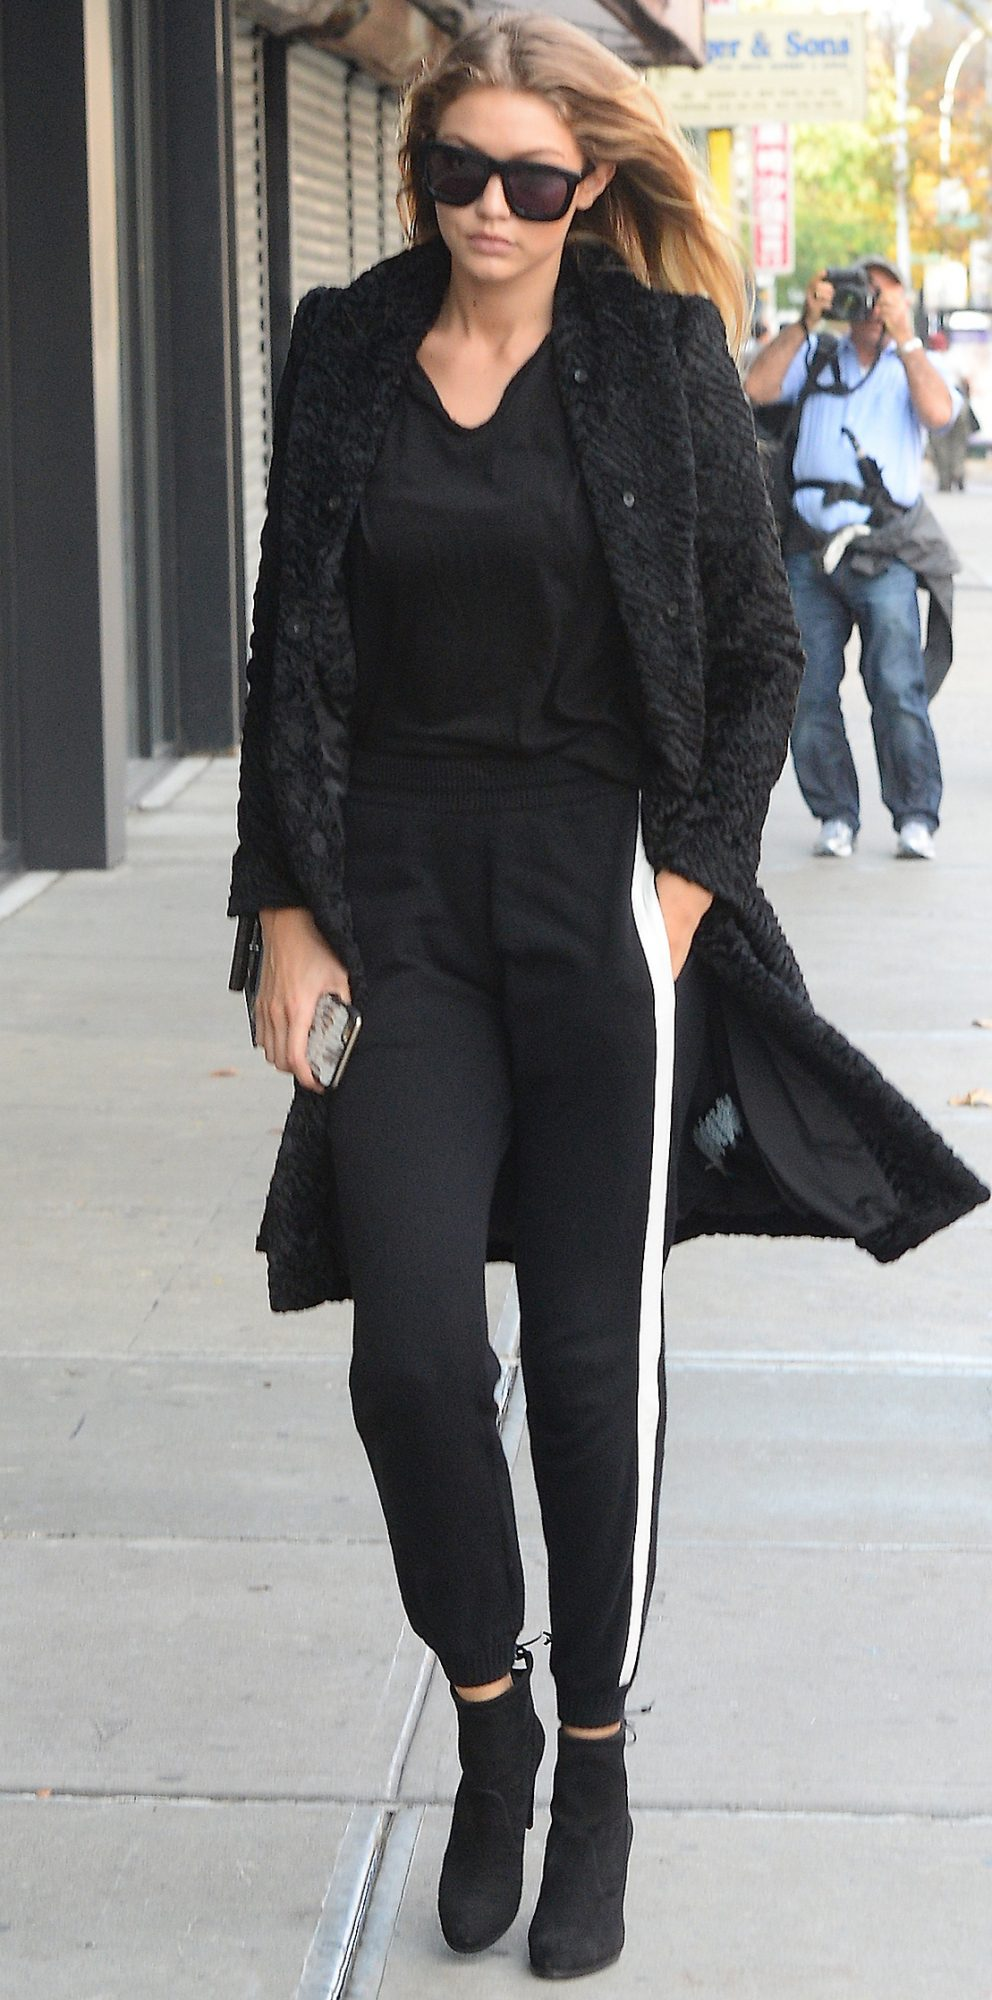 1ed95651a14 How to Wear Ankle Boots - Celebrities in Ankle Boots